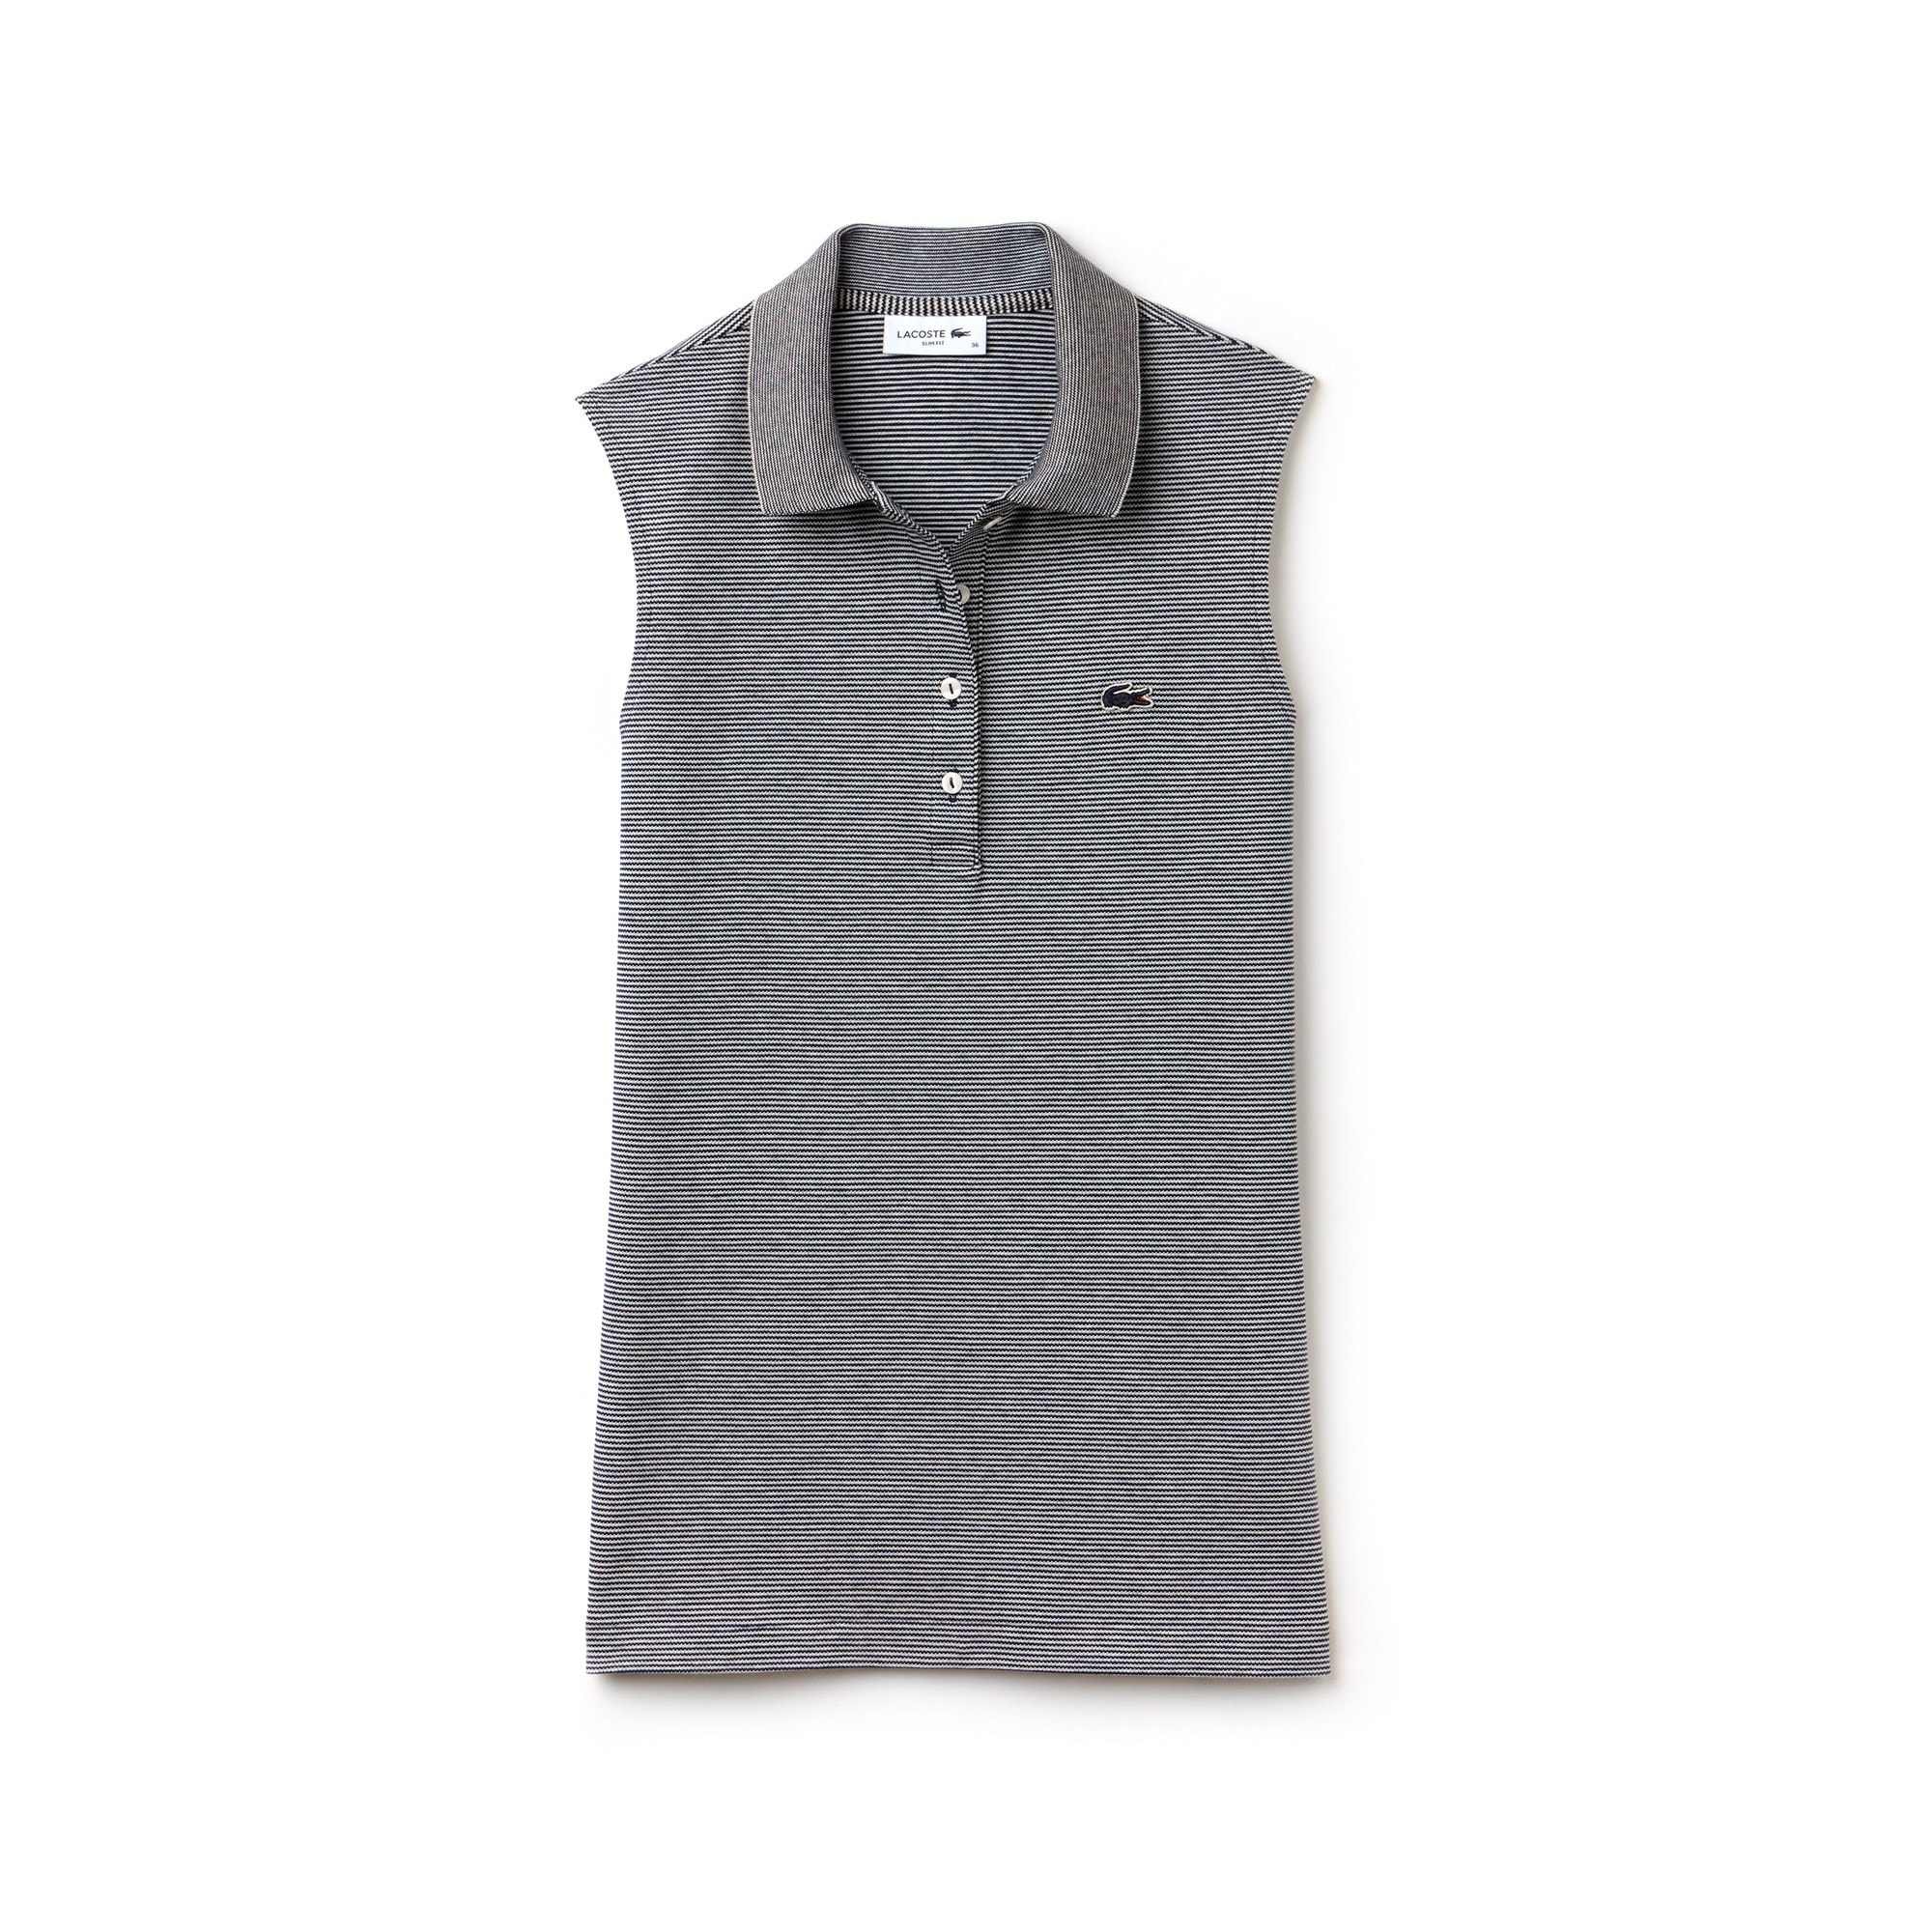 Polo slim fit Lacoste senza maniche in mini piqué stretch millerighe